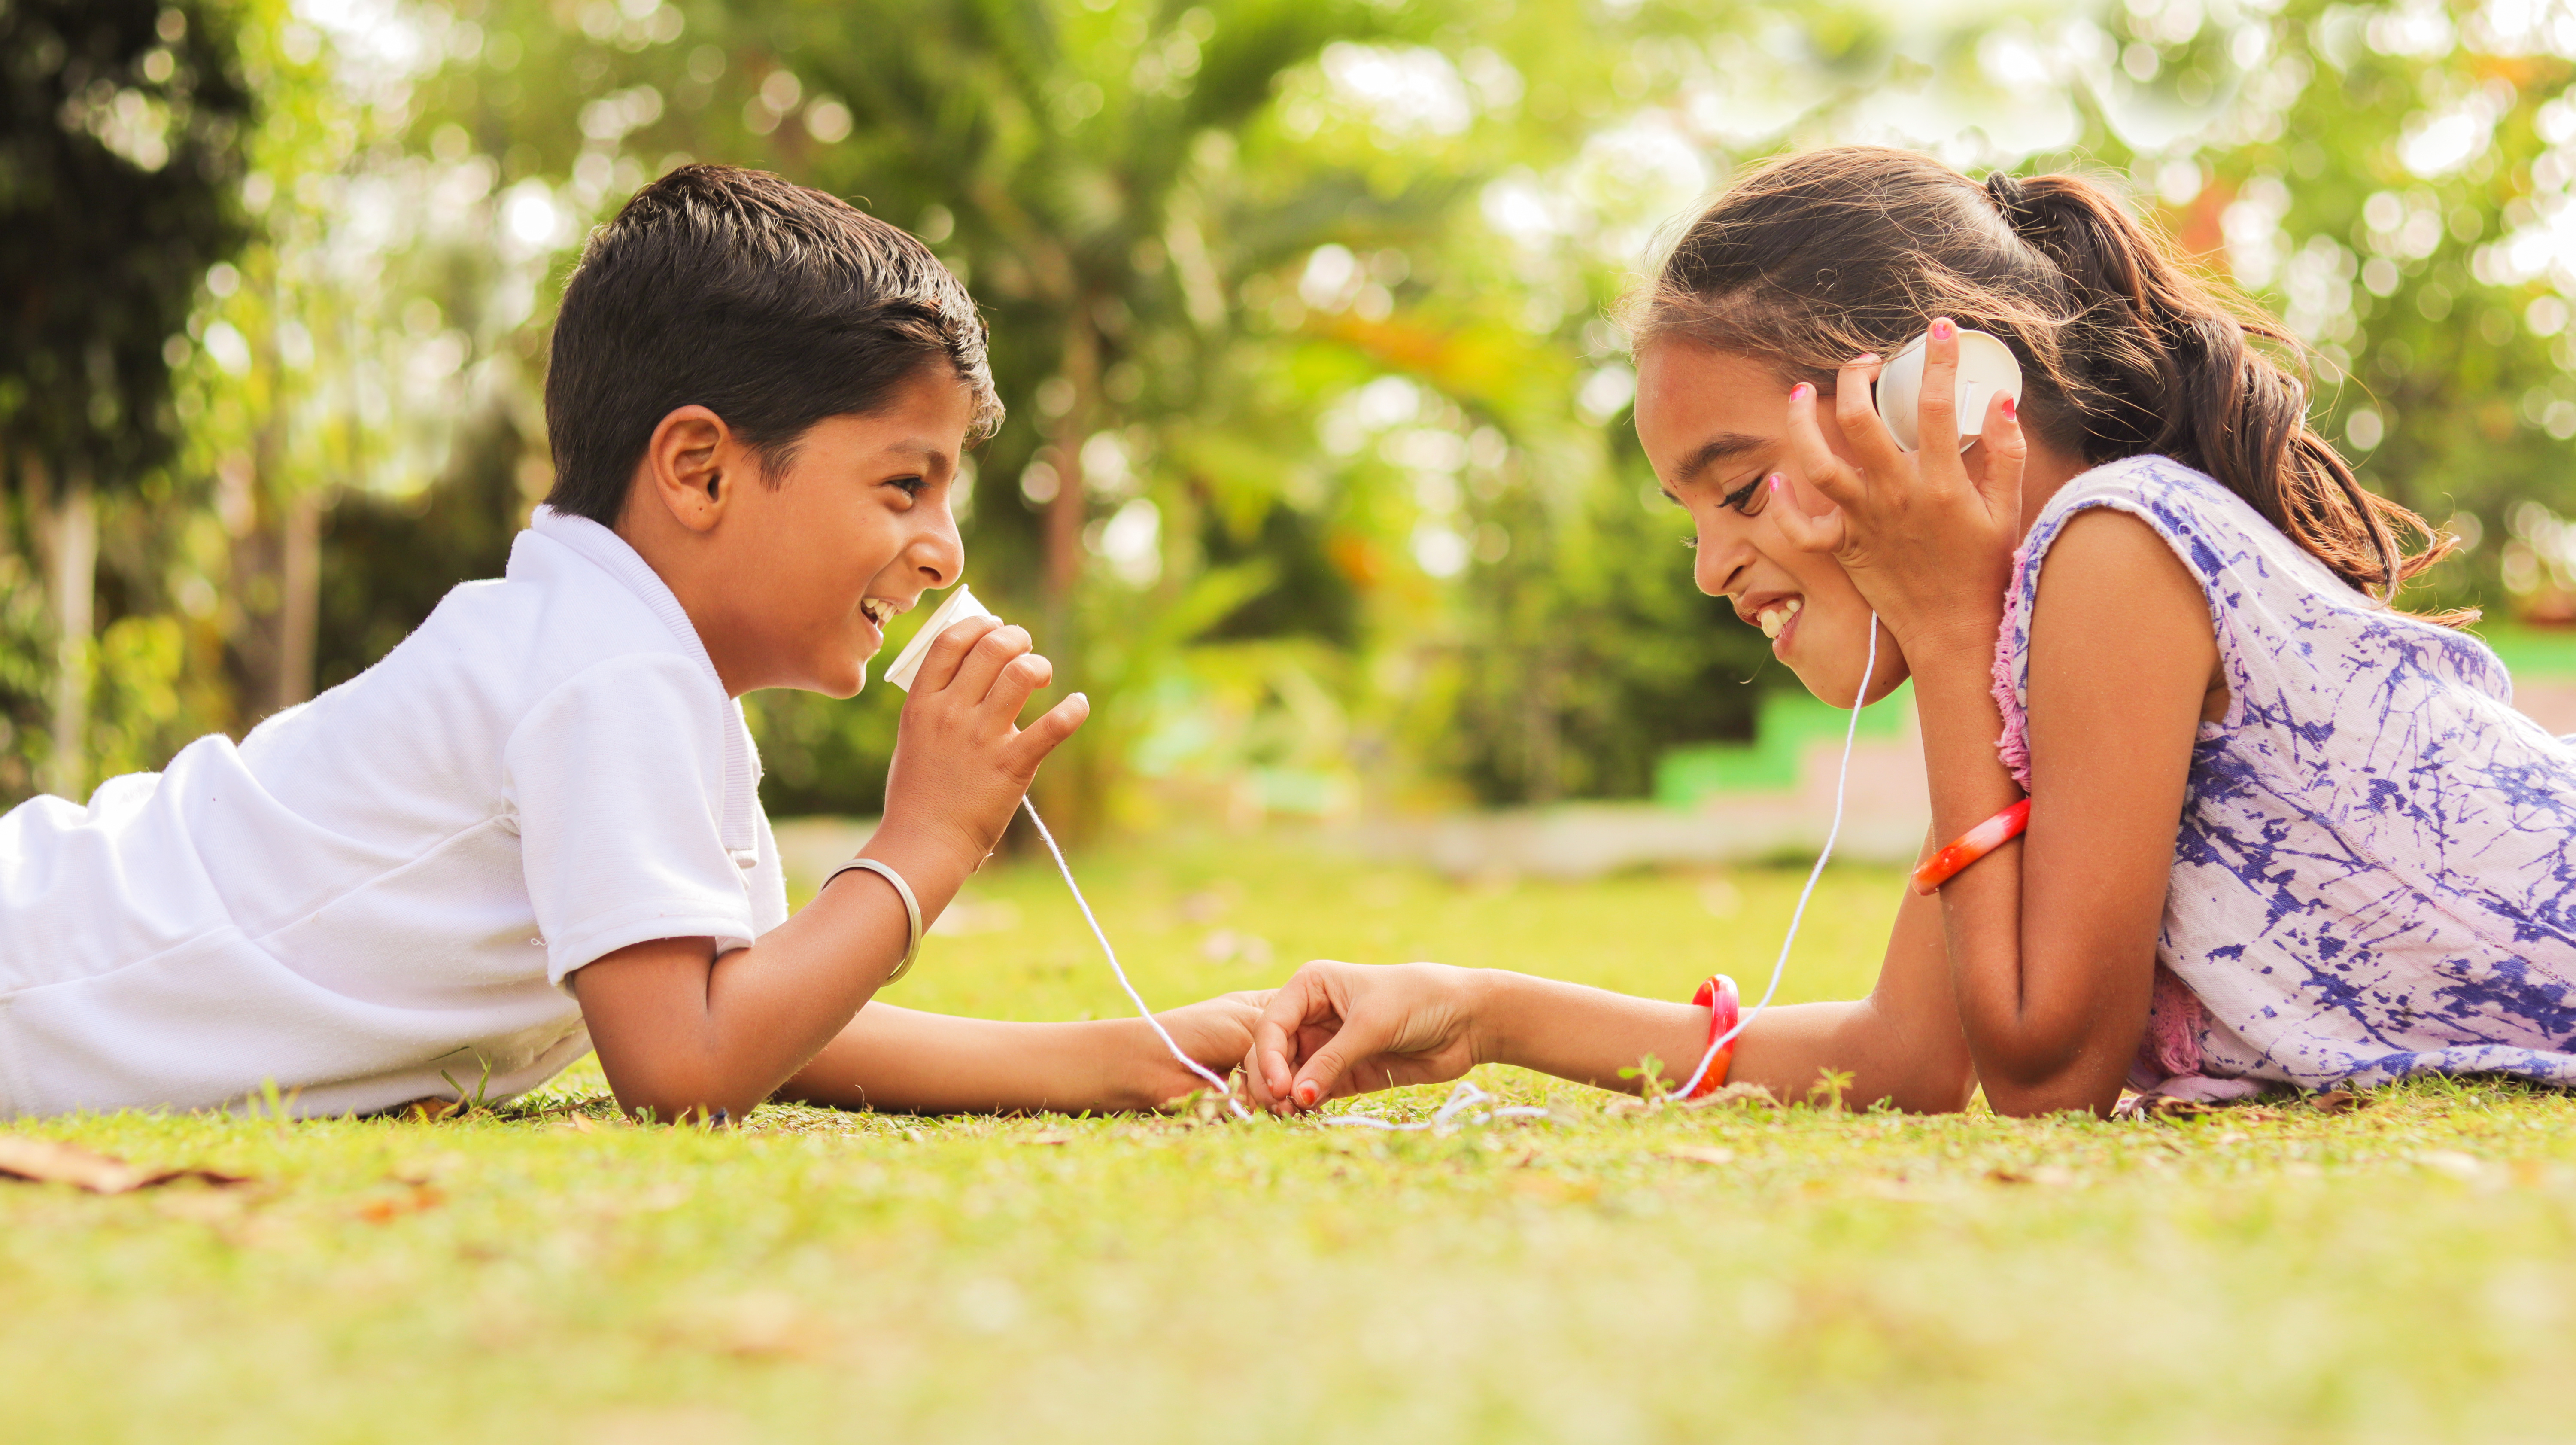 Helping Siblings Communicate Instead of Fight